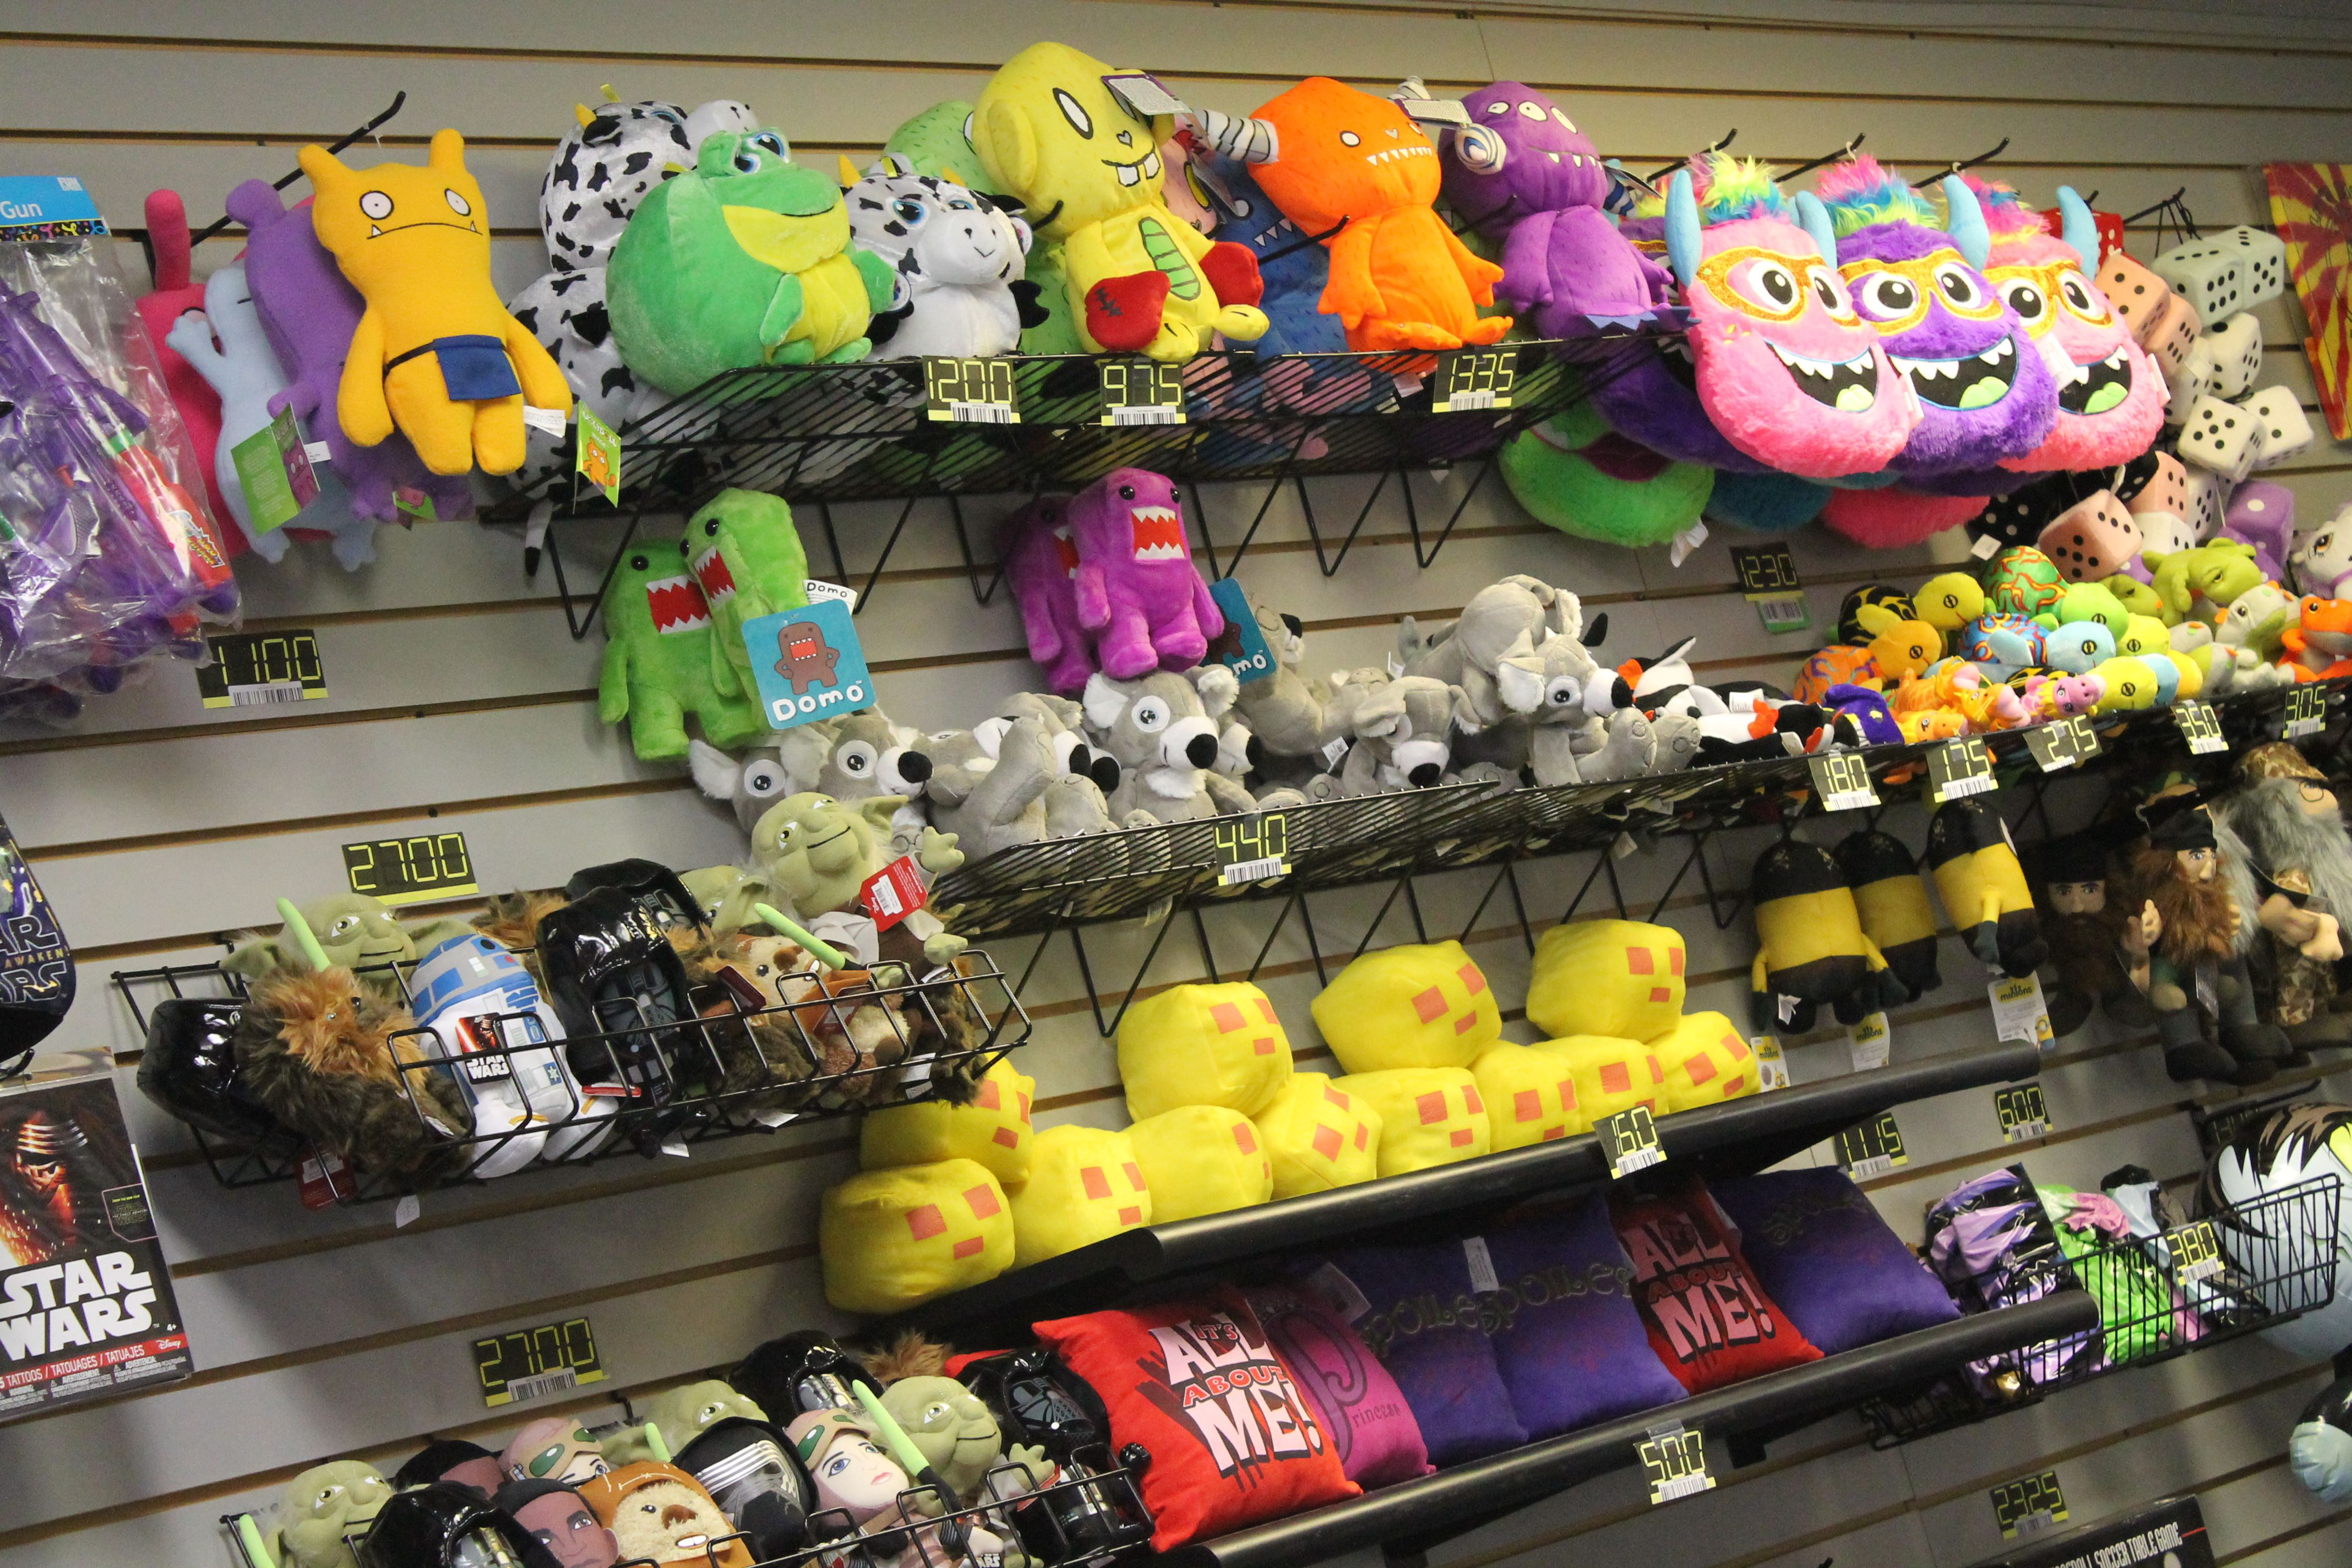 Putt Putt Fun House Halloween 2020 Pick your prize at Putt Putt FunHouse! We offer the most exciting